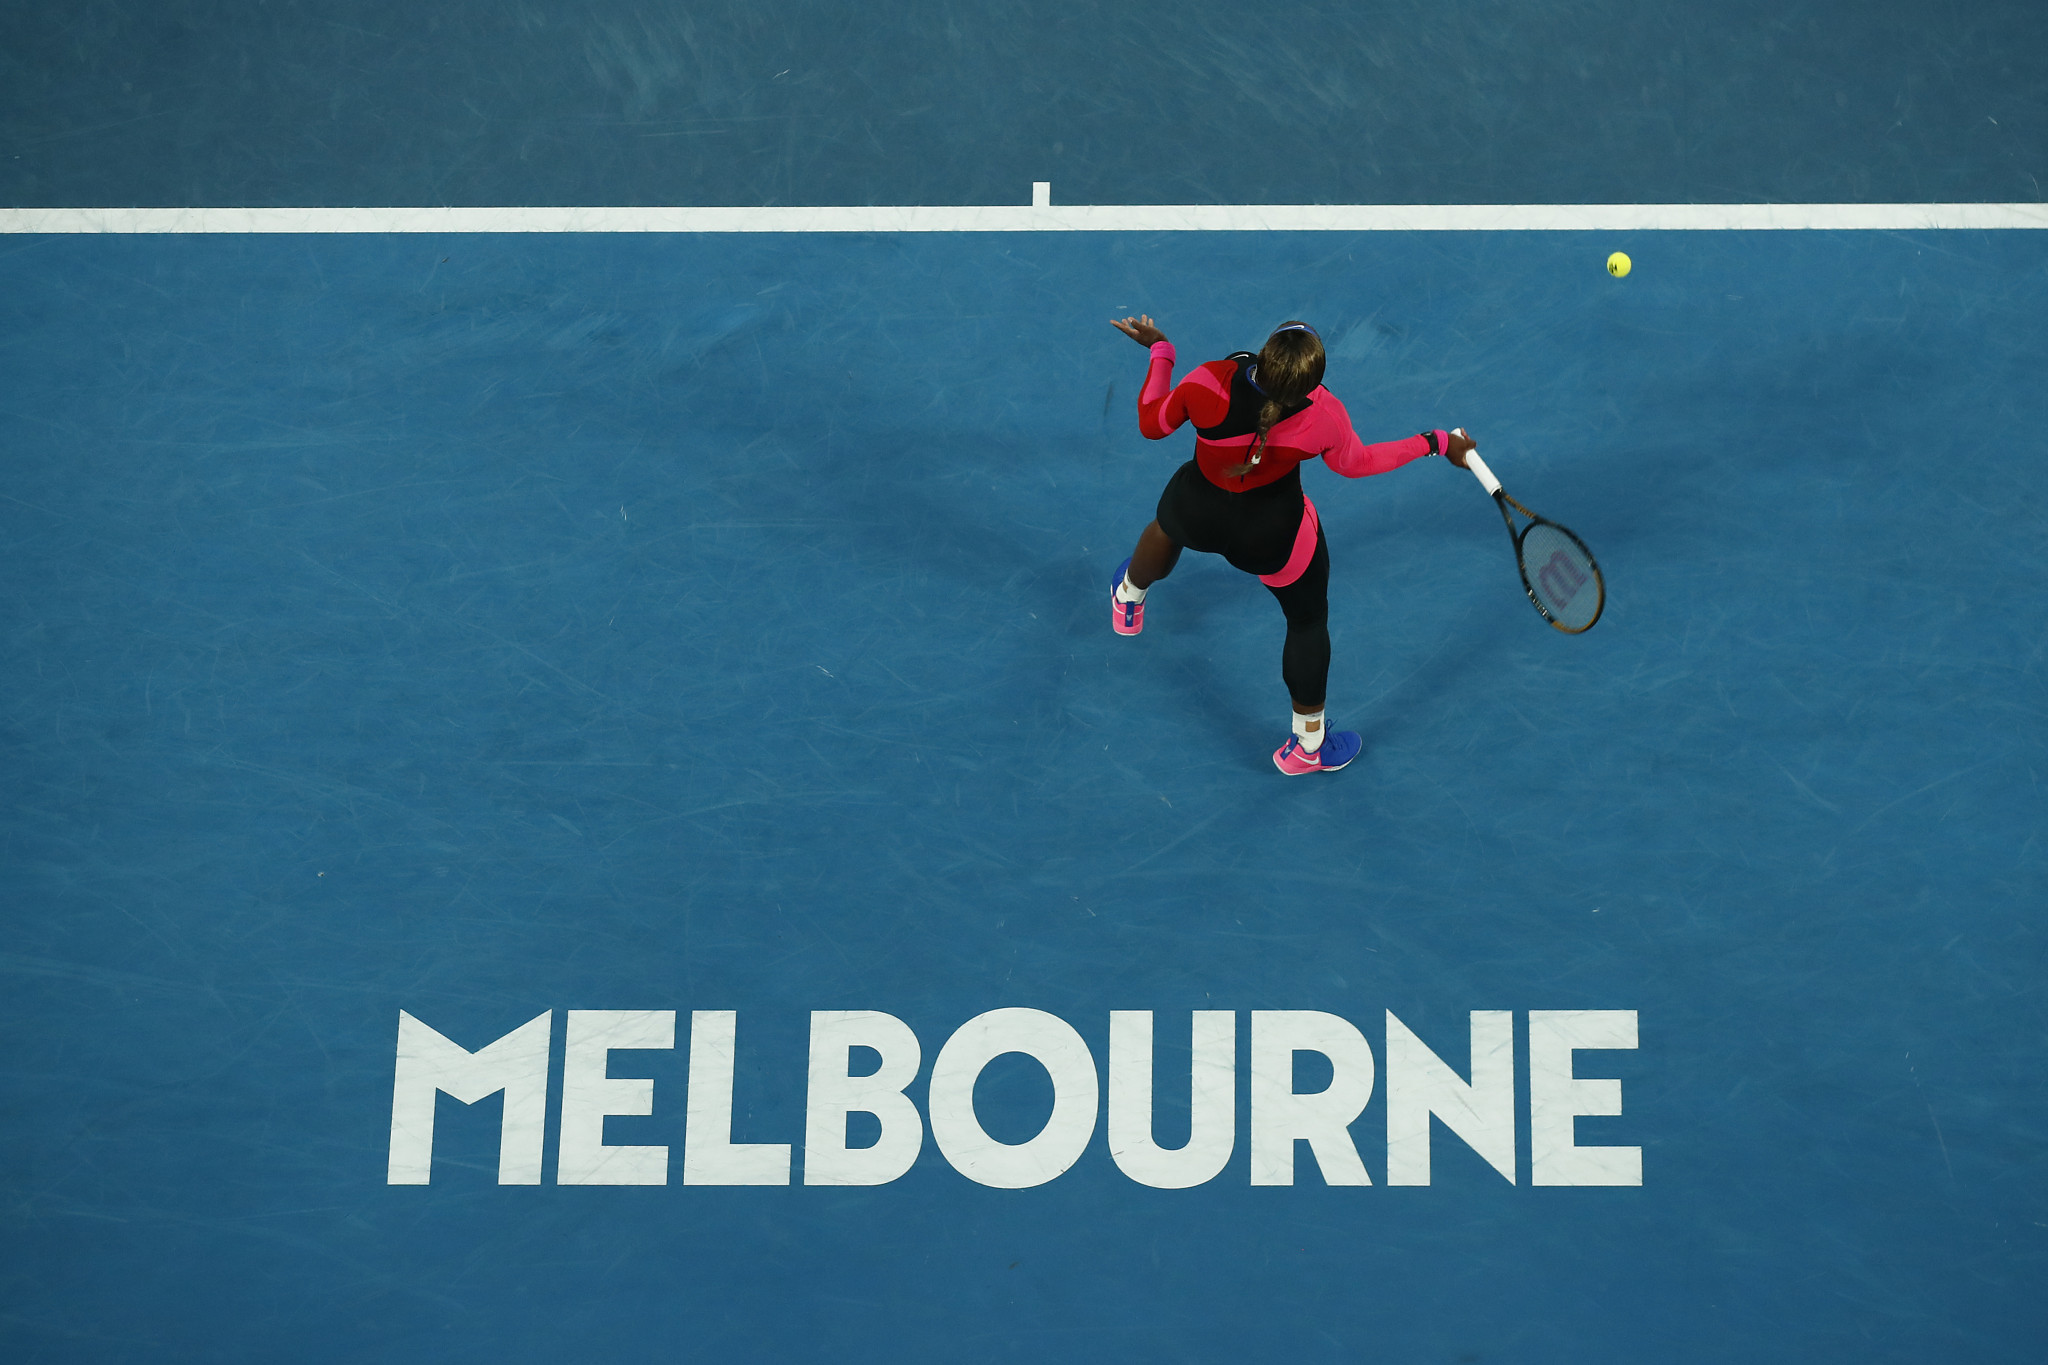 Williams continues quest for 24th Grand Slam title at Australian Open